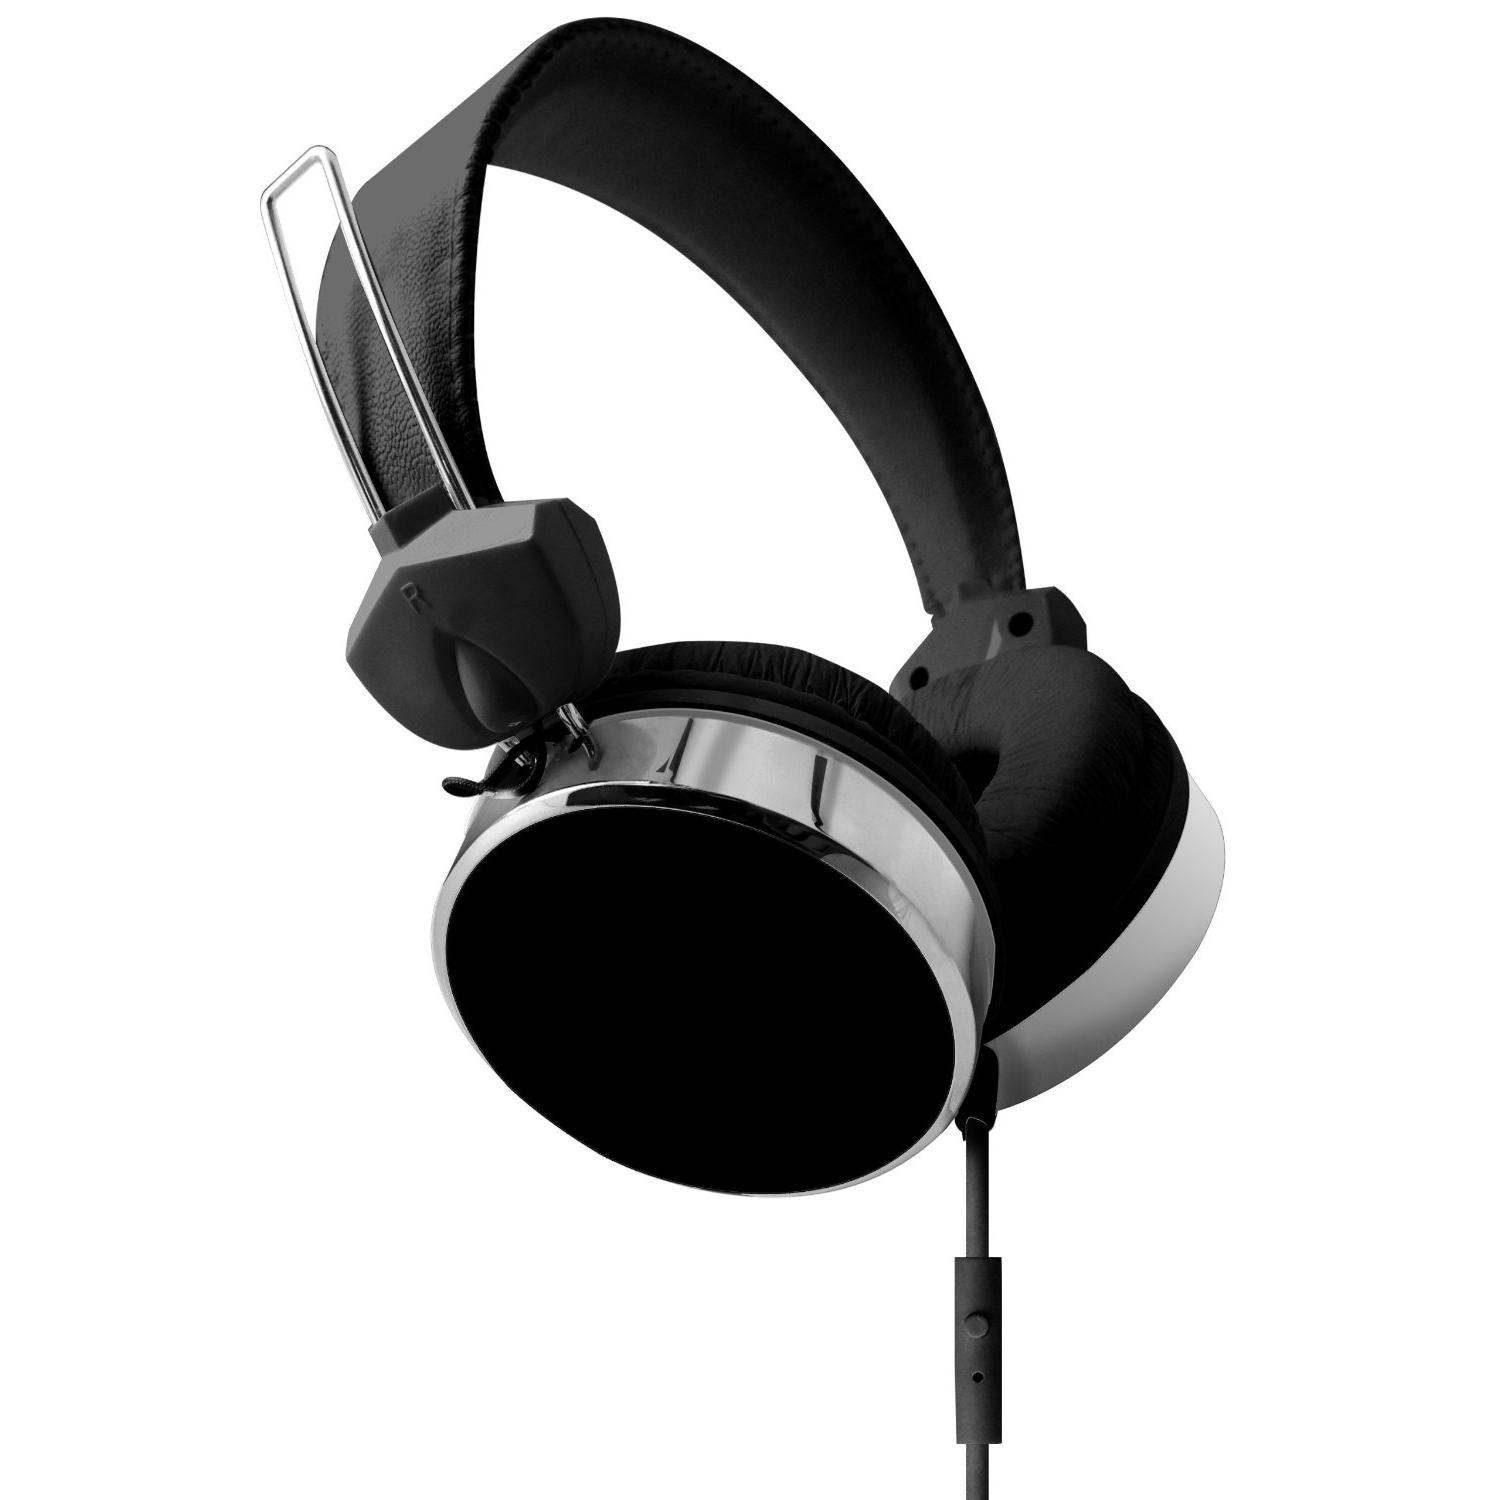 hype audio stereo eclipse performance headphones w inline mic answer control ebay. Black Bedroom Furniture Sets. Home Design Ideas